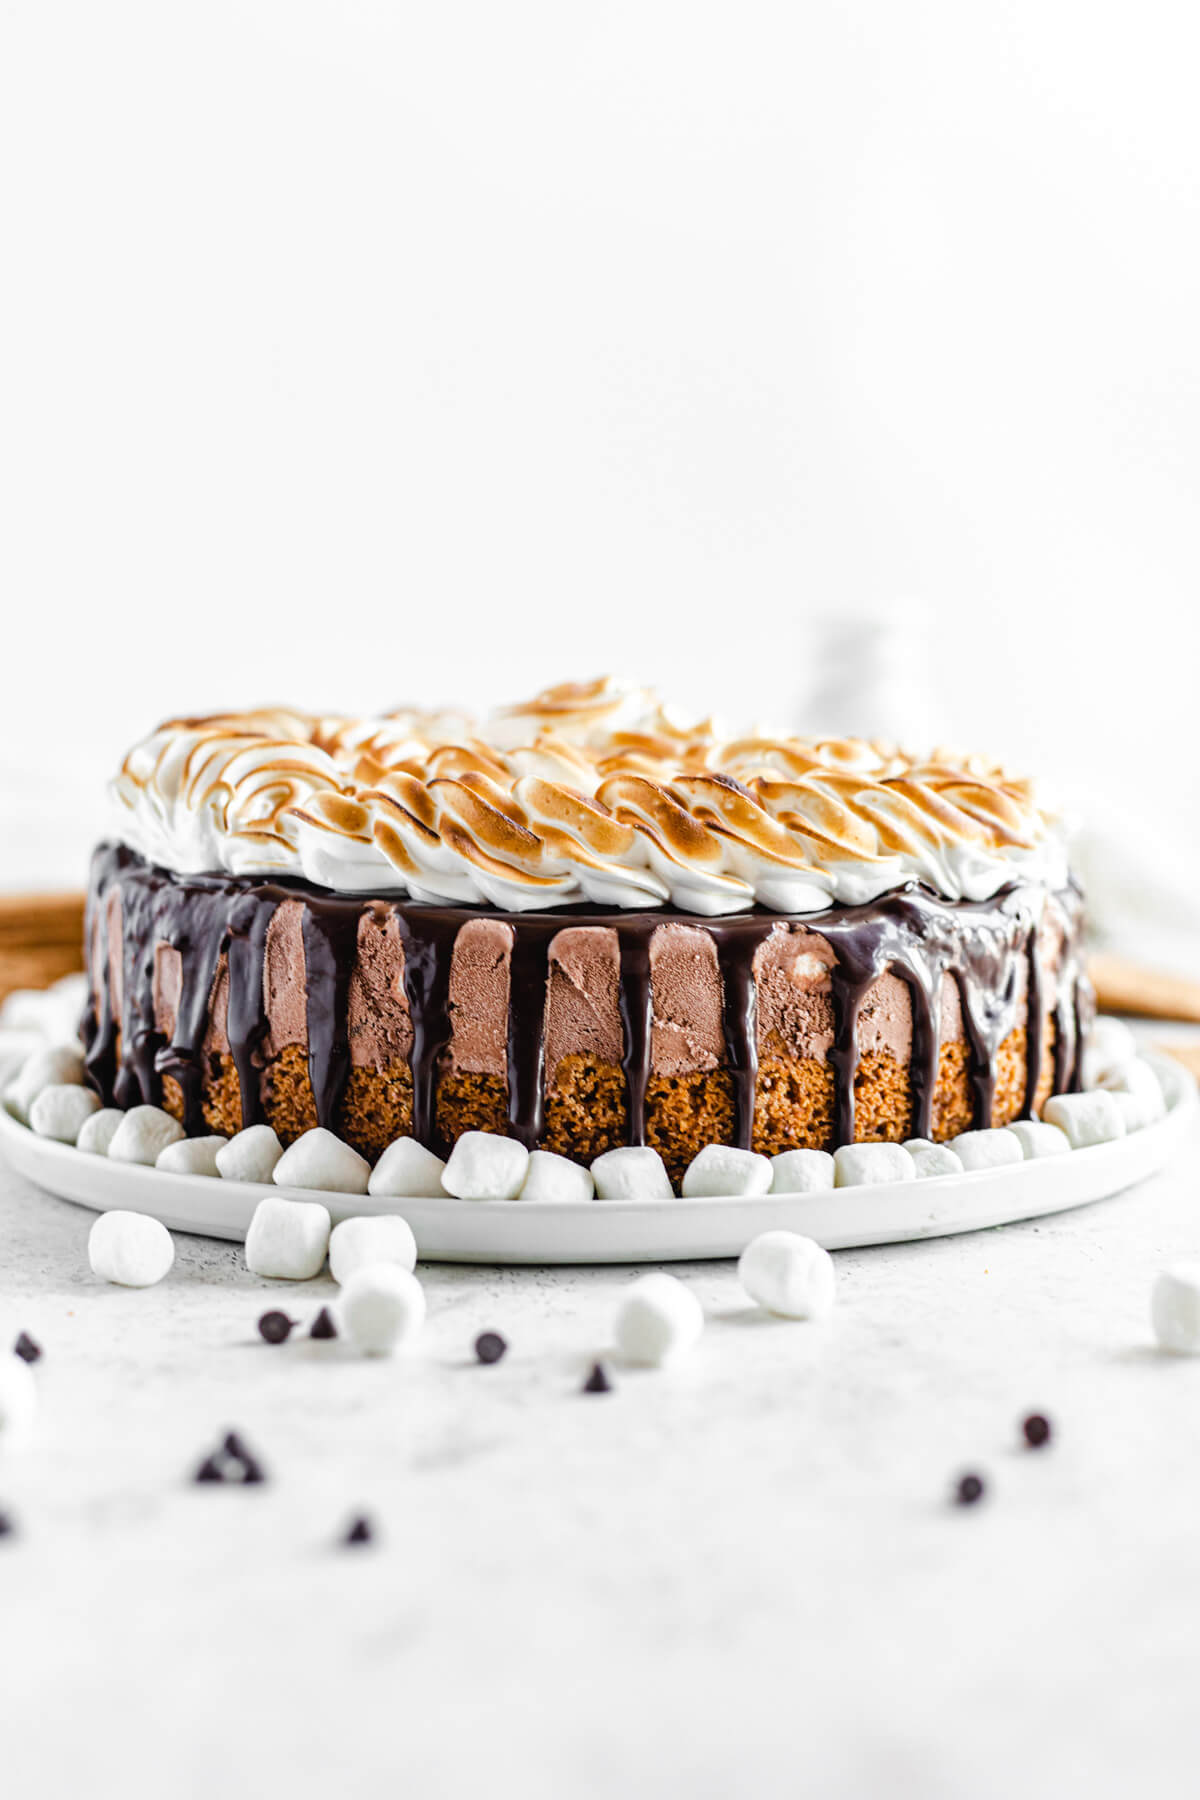 s'mores ice cream cake on a large white plate